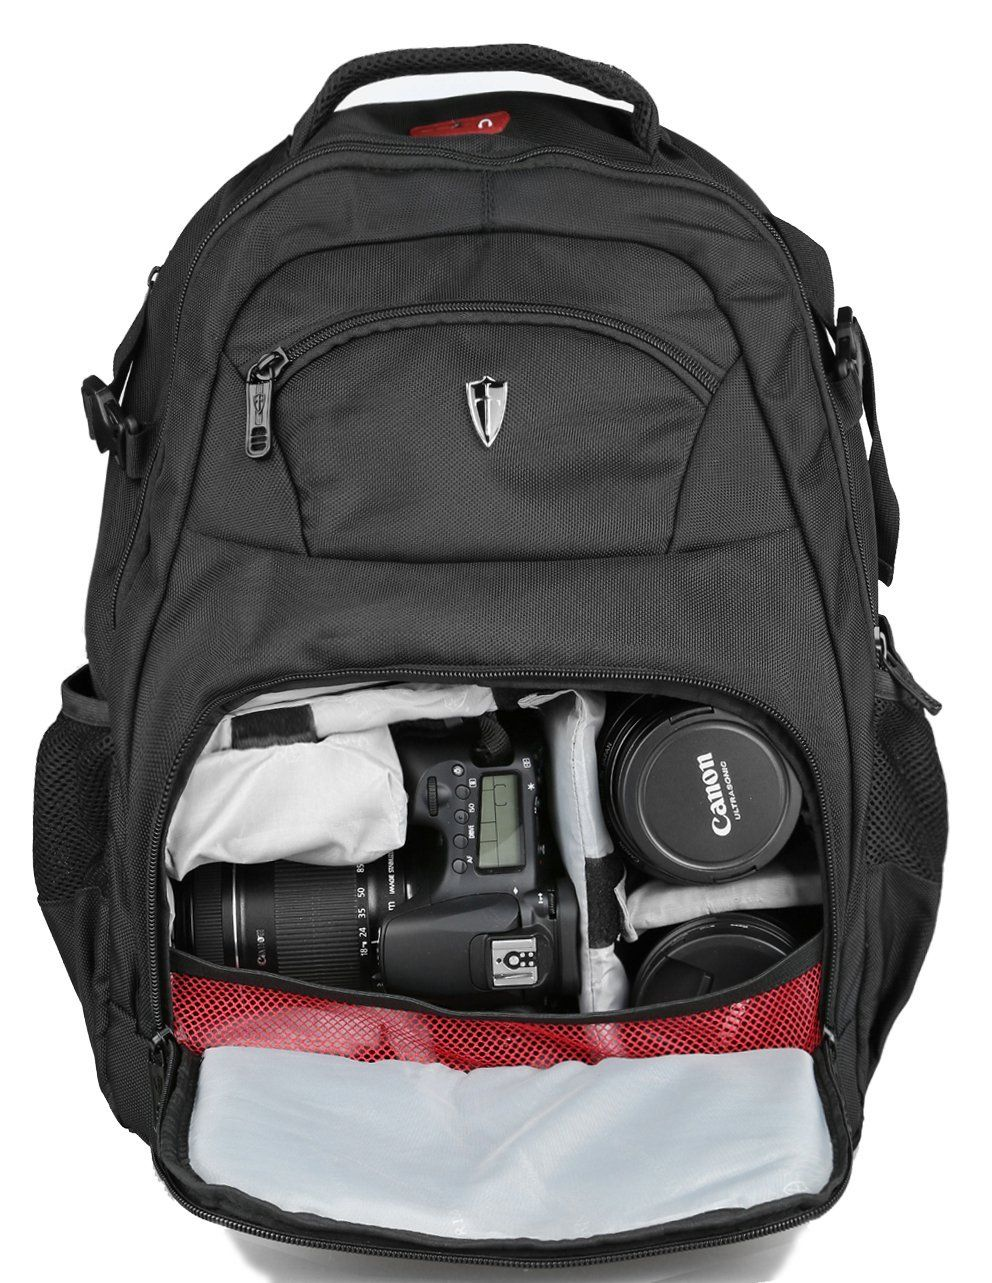 c7ab53f9d5 Victoriatourist V6022 Laptop Backpack for SLR Camera and 15 Inch Laptops  with Waterproof Rain Cover.  affiliate